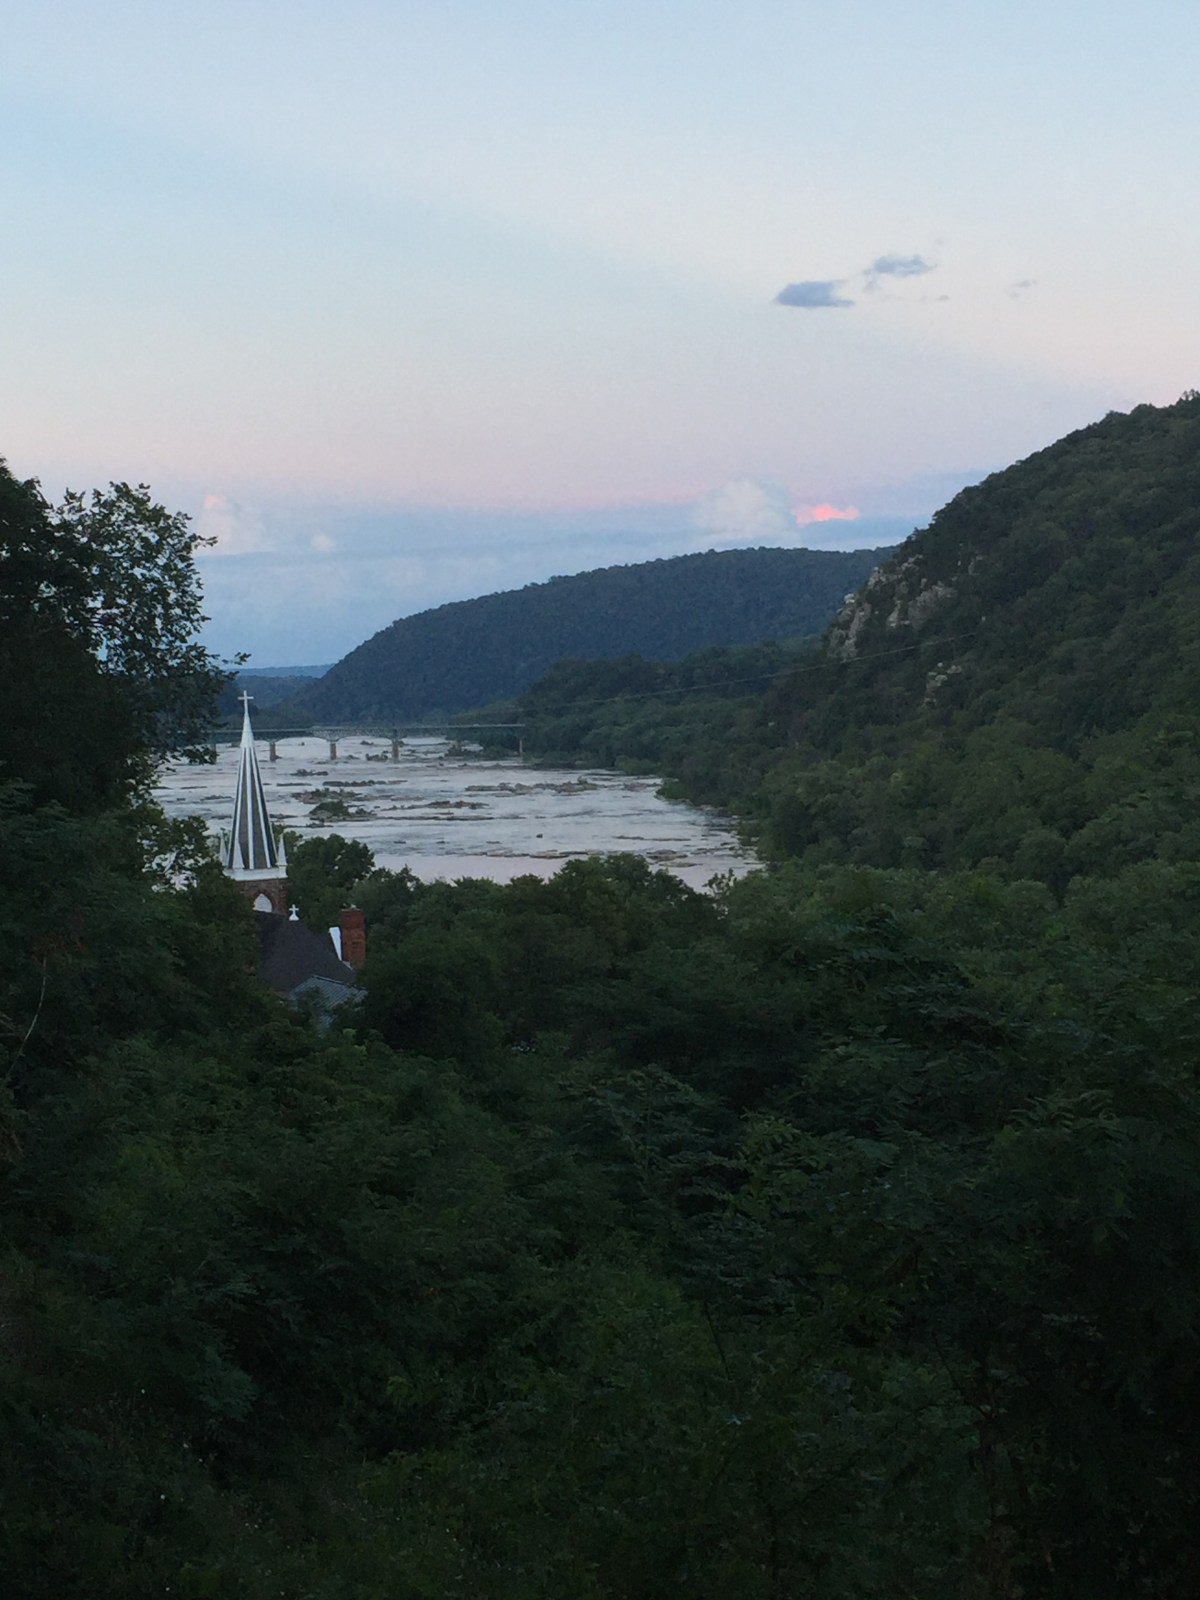 Changemakers: Harpers Ferry History Prompts Social Awareness